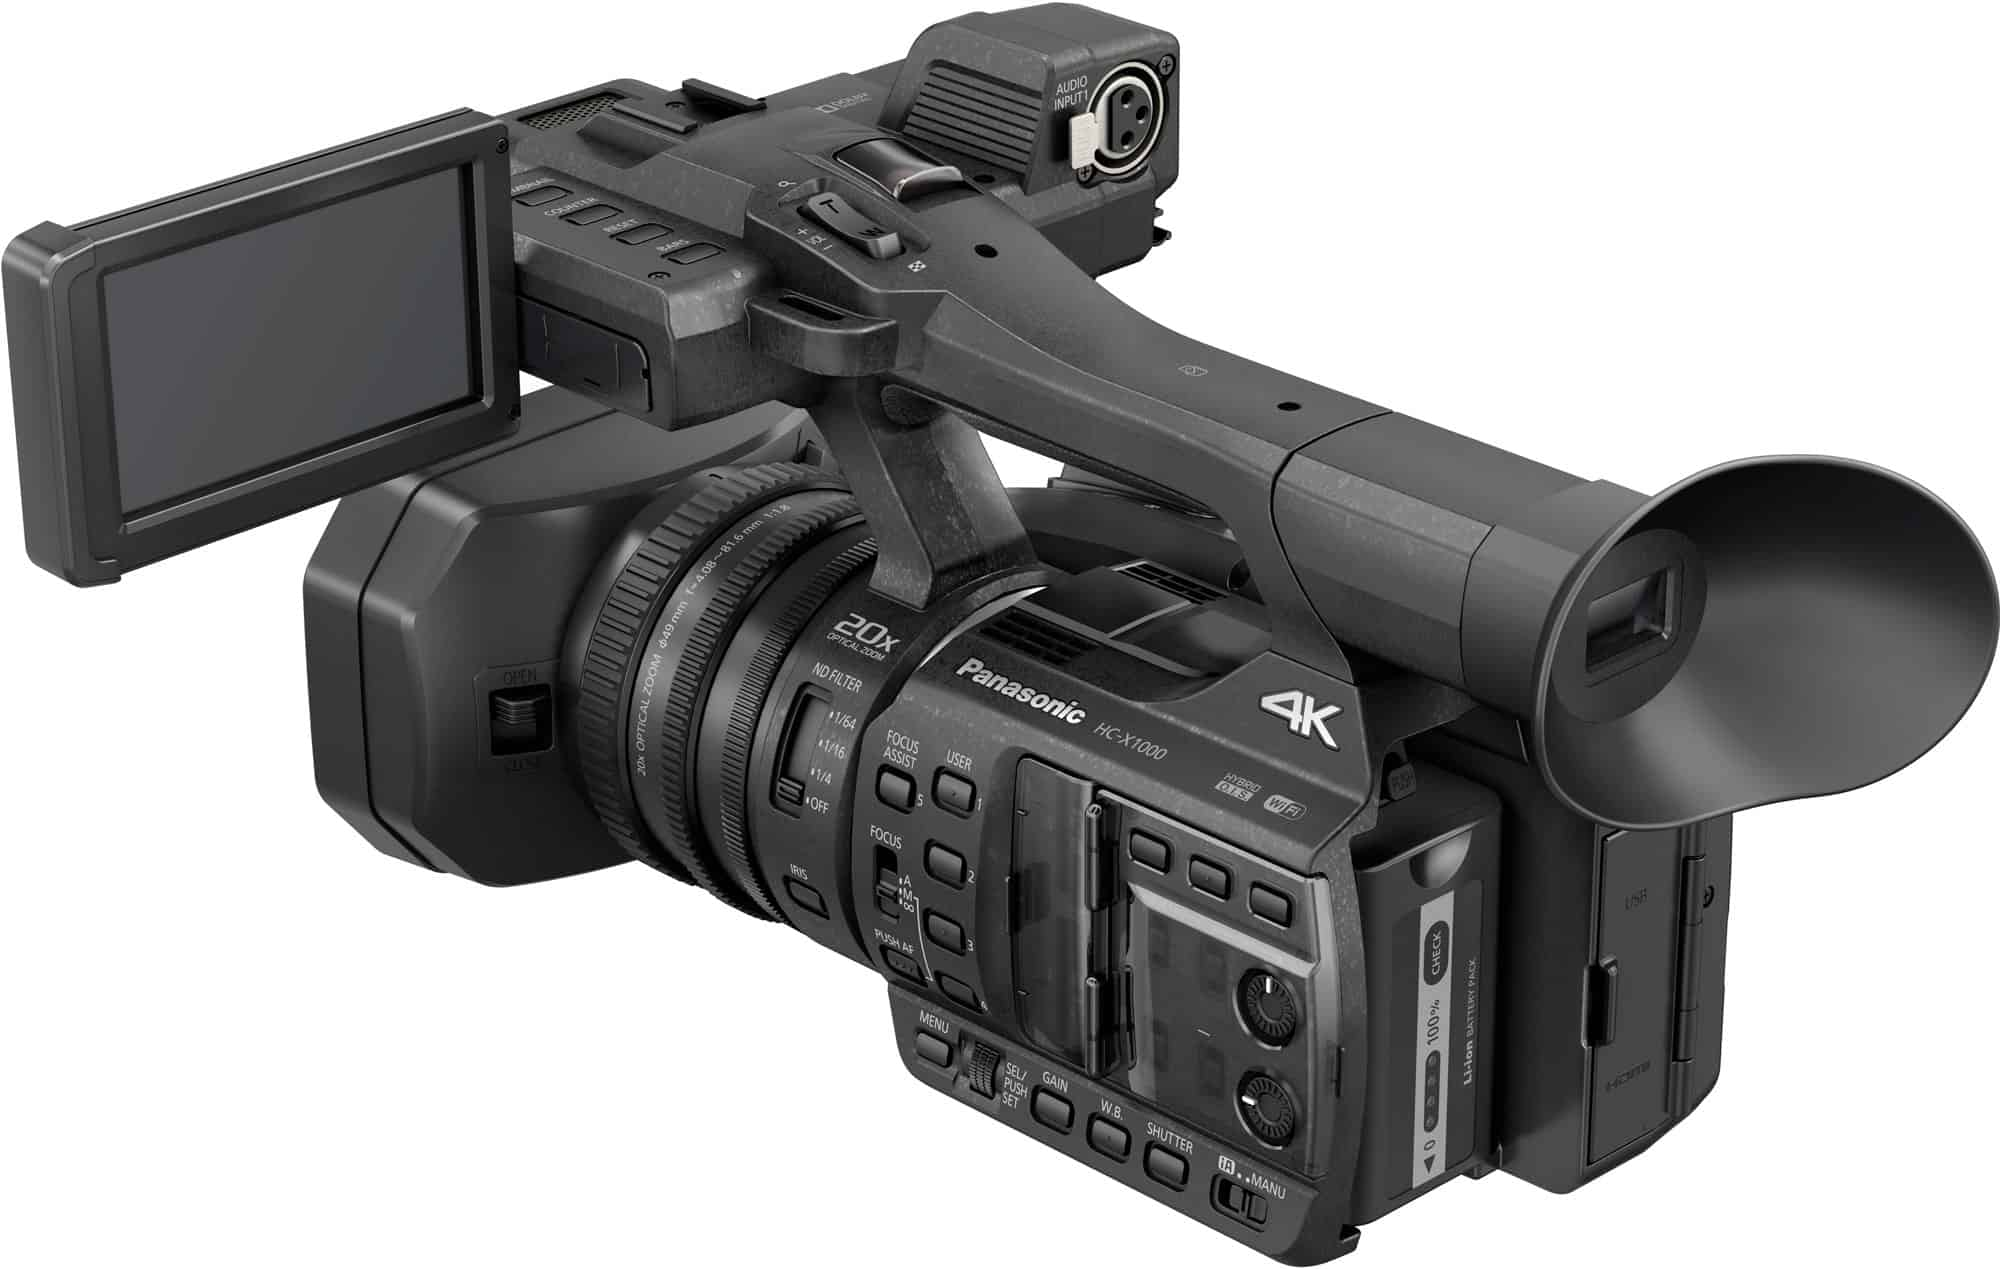 First Look: New Panasonic HC-X1000 4K Camcorder, Packed with